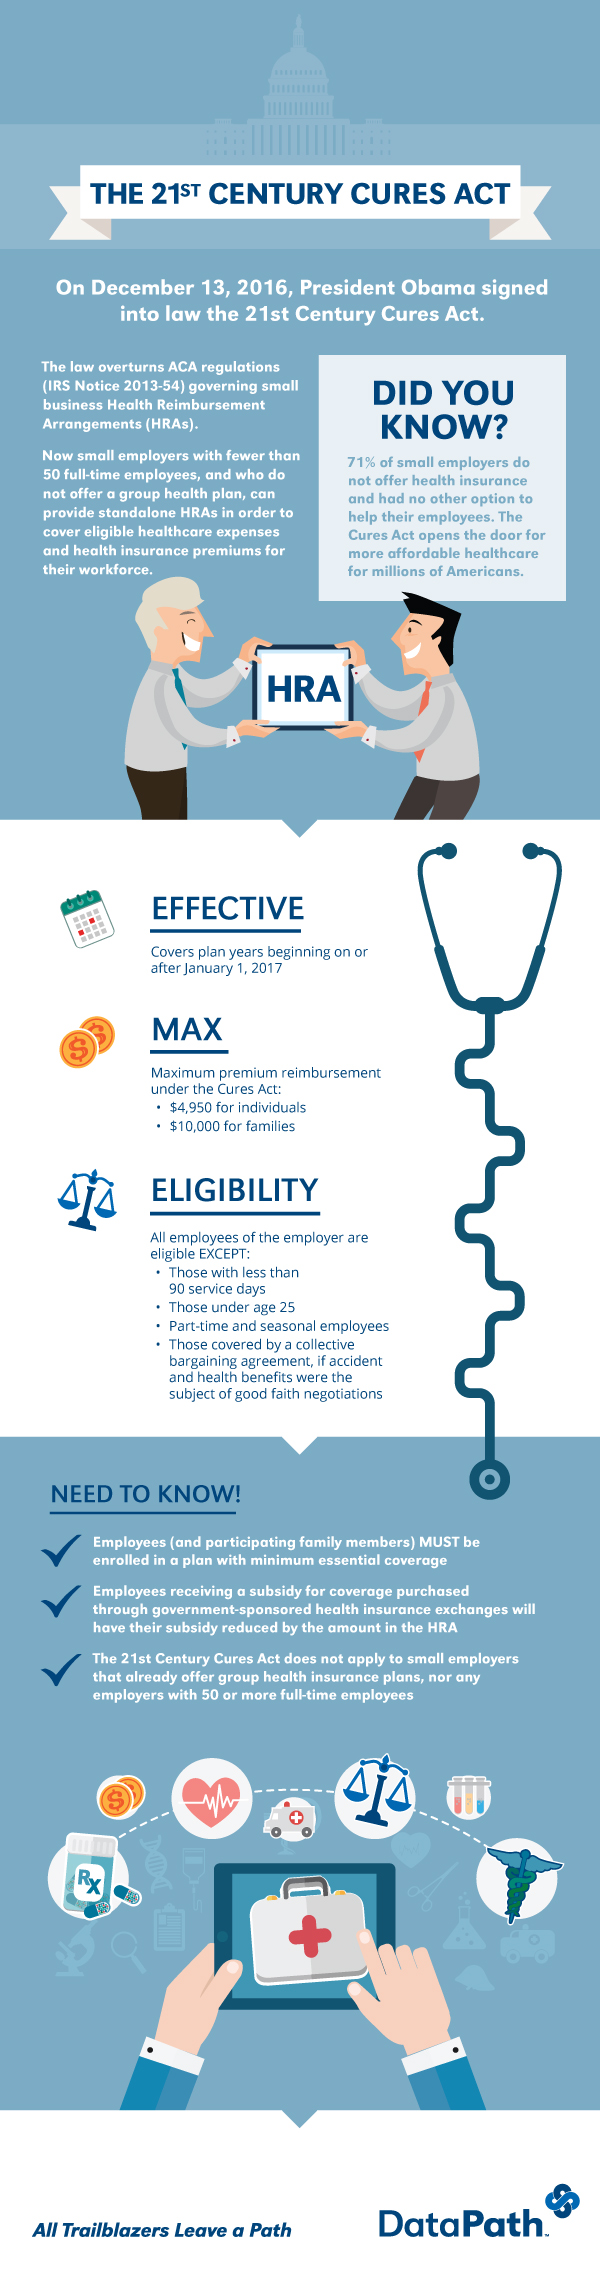 hra_ruling_infographic_121916